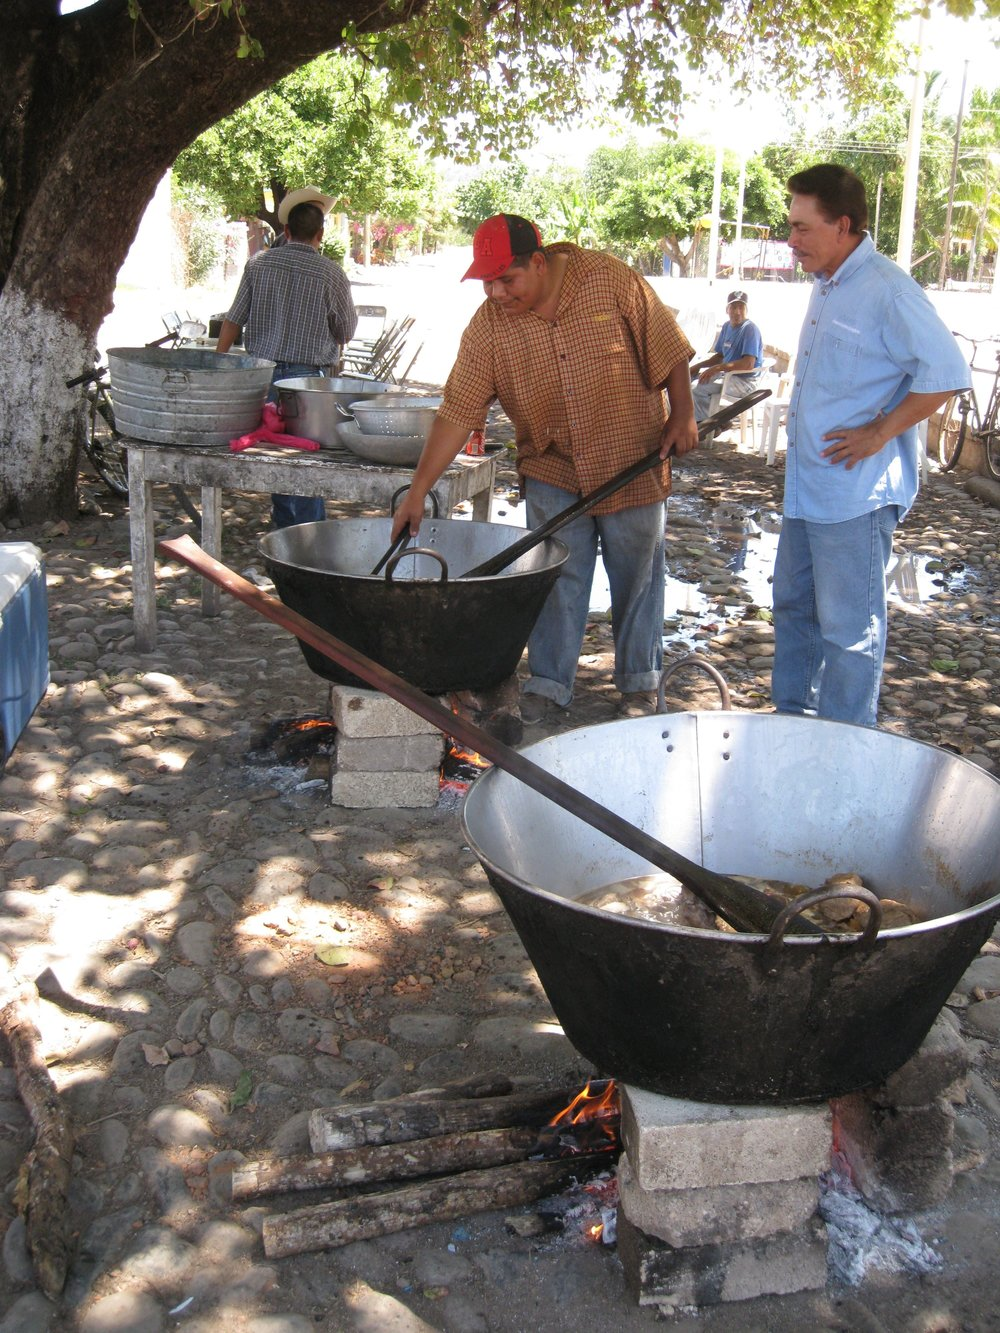 preparing chicarrones (pork cracklings) in the nearby town of otates.